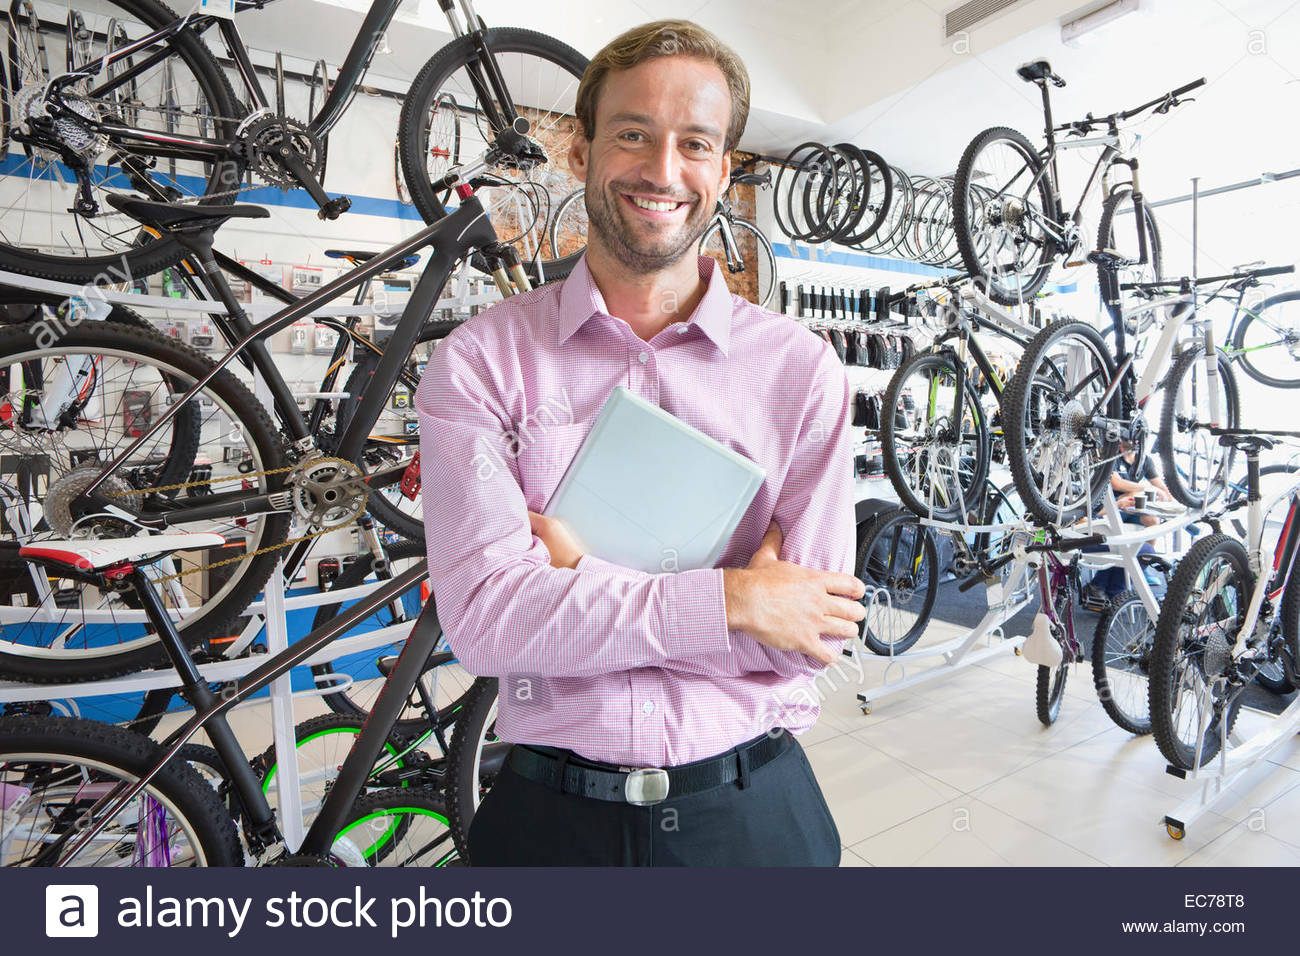 Propriétaire de magasin à magasin de bicyclettes smiling at camera Photo Stock